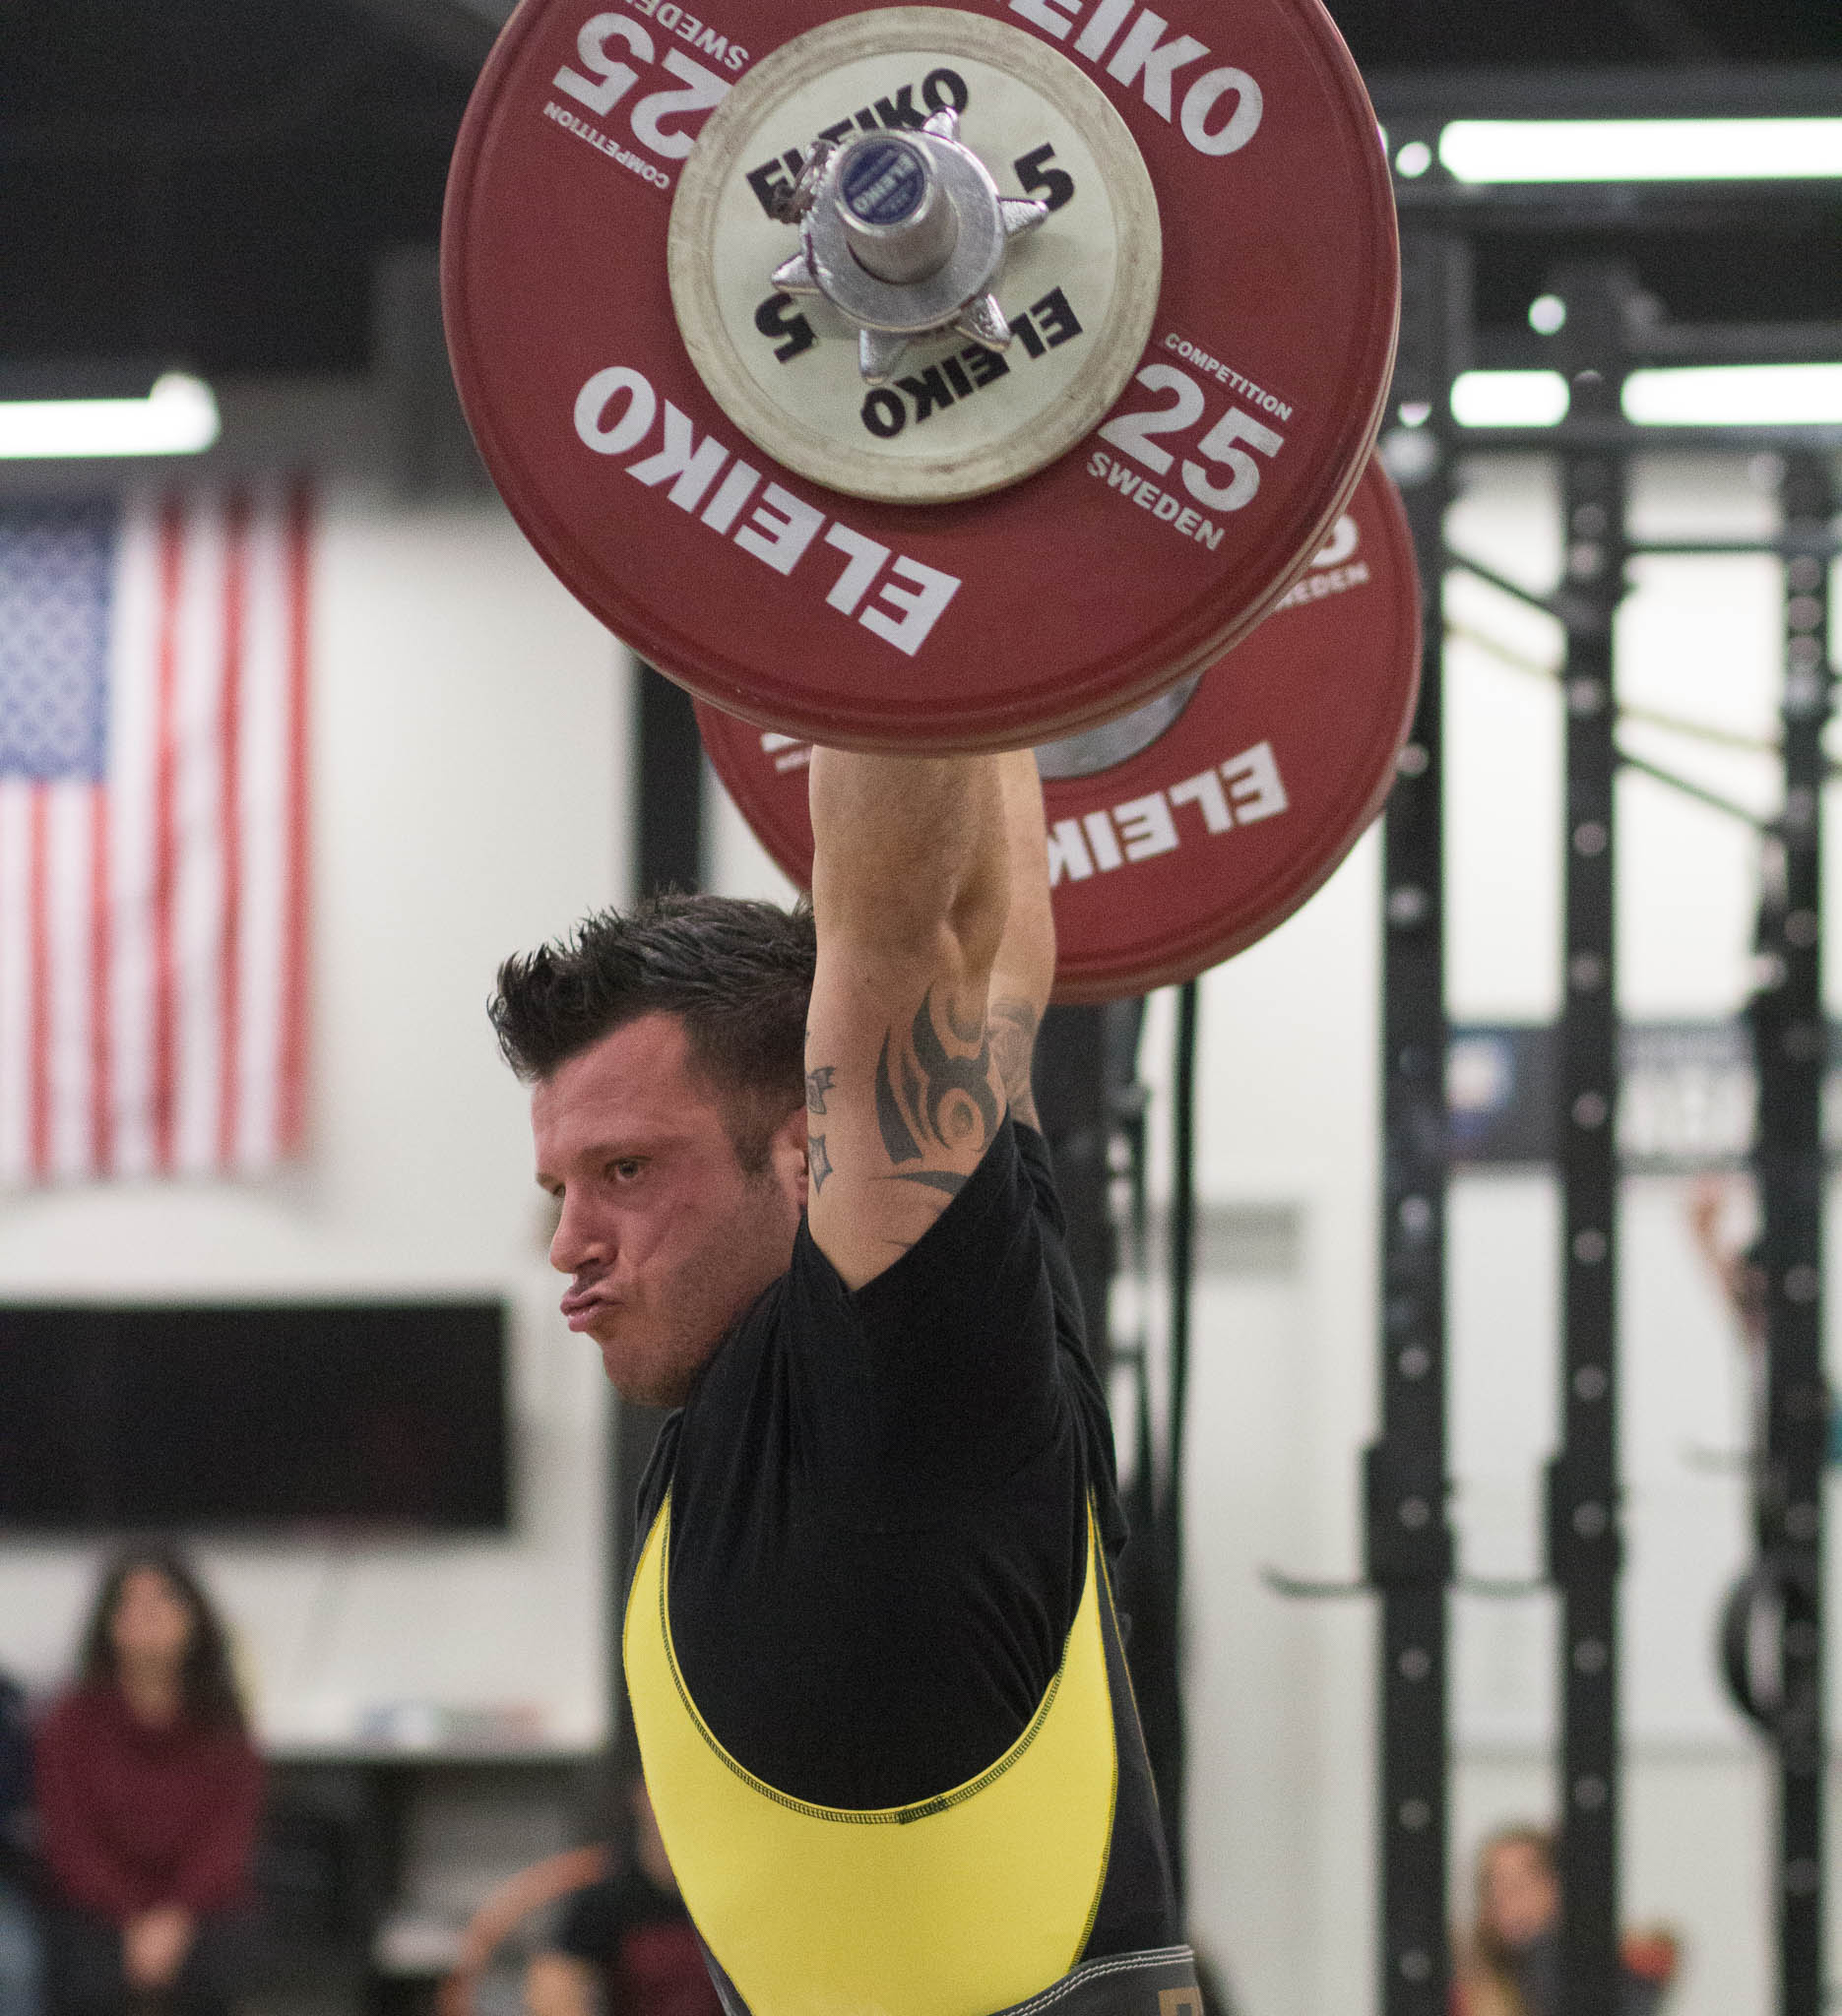 Every weightlifter should express their victories.